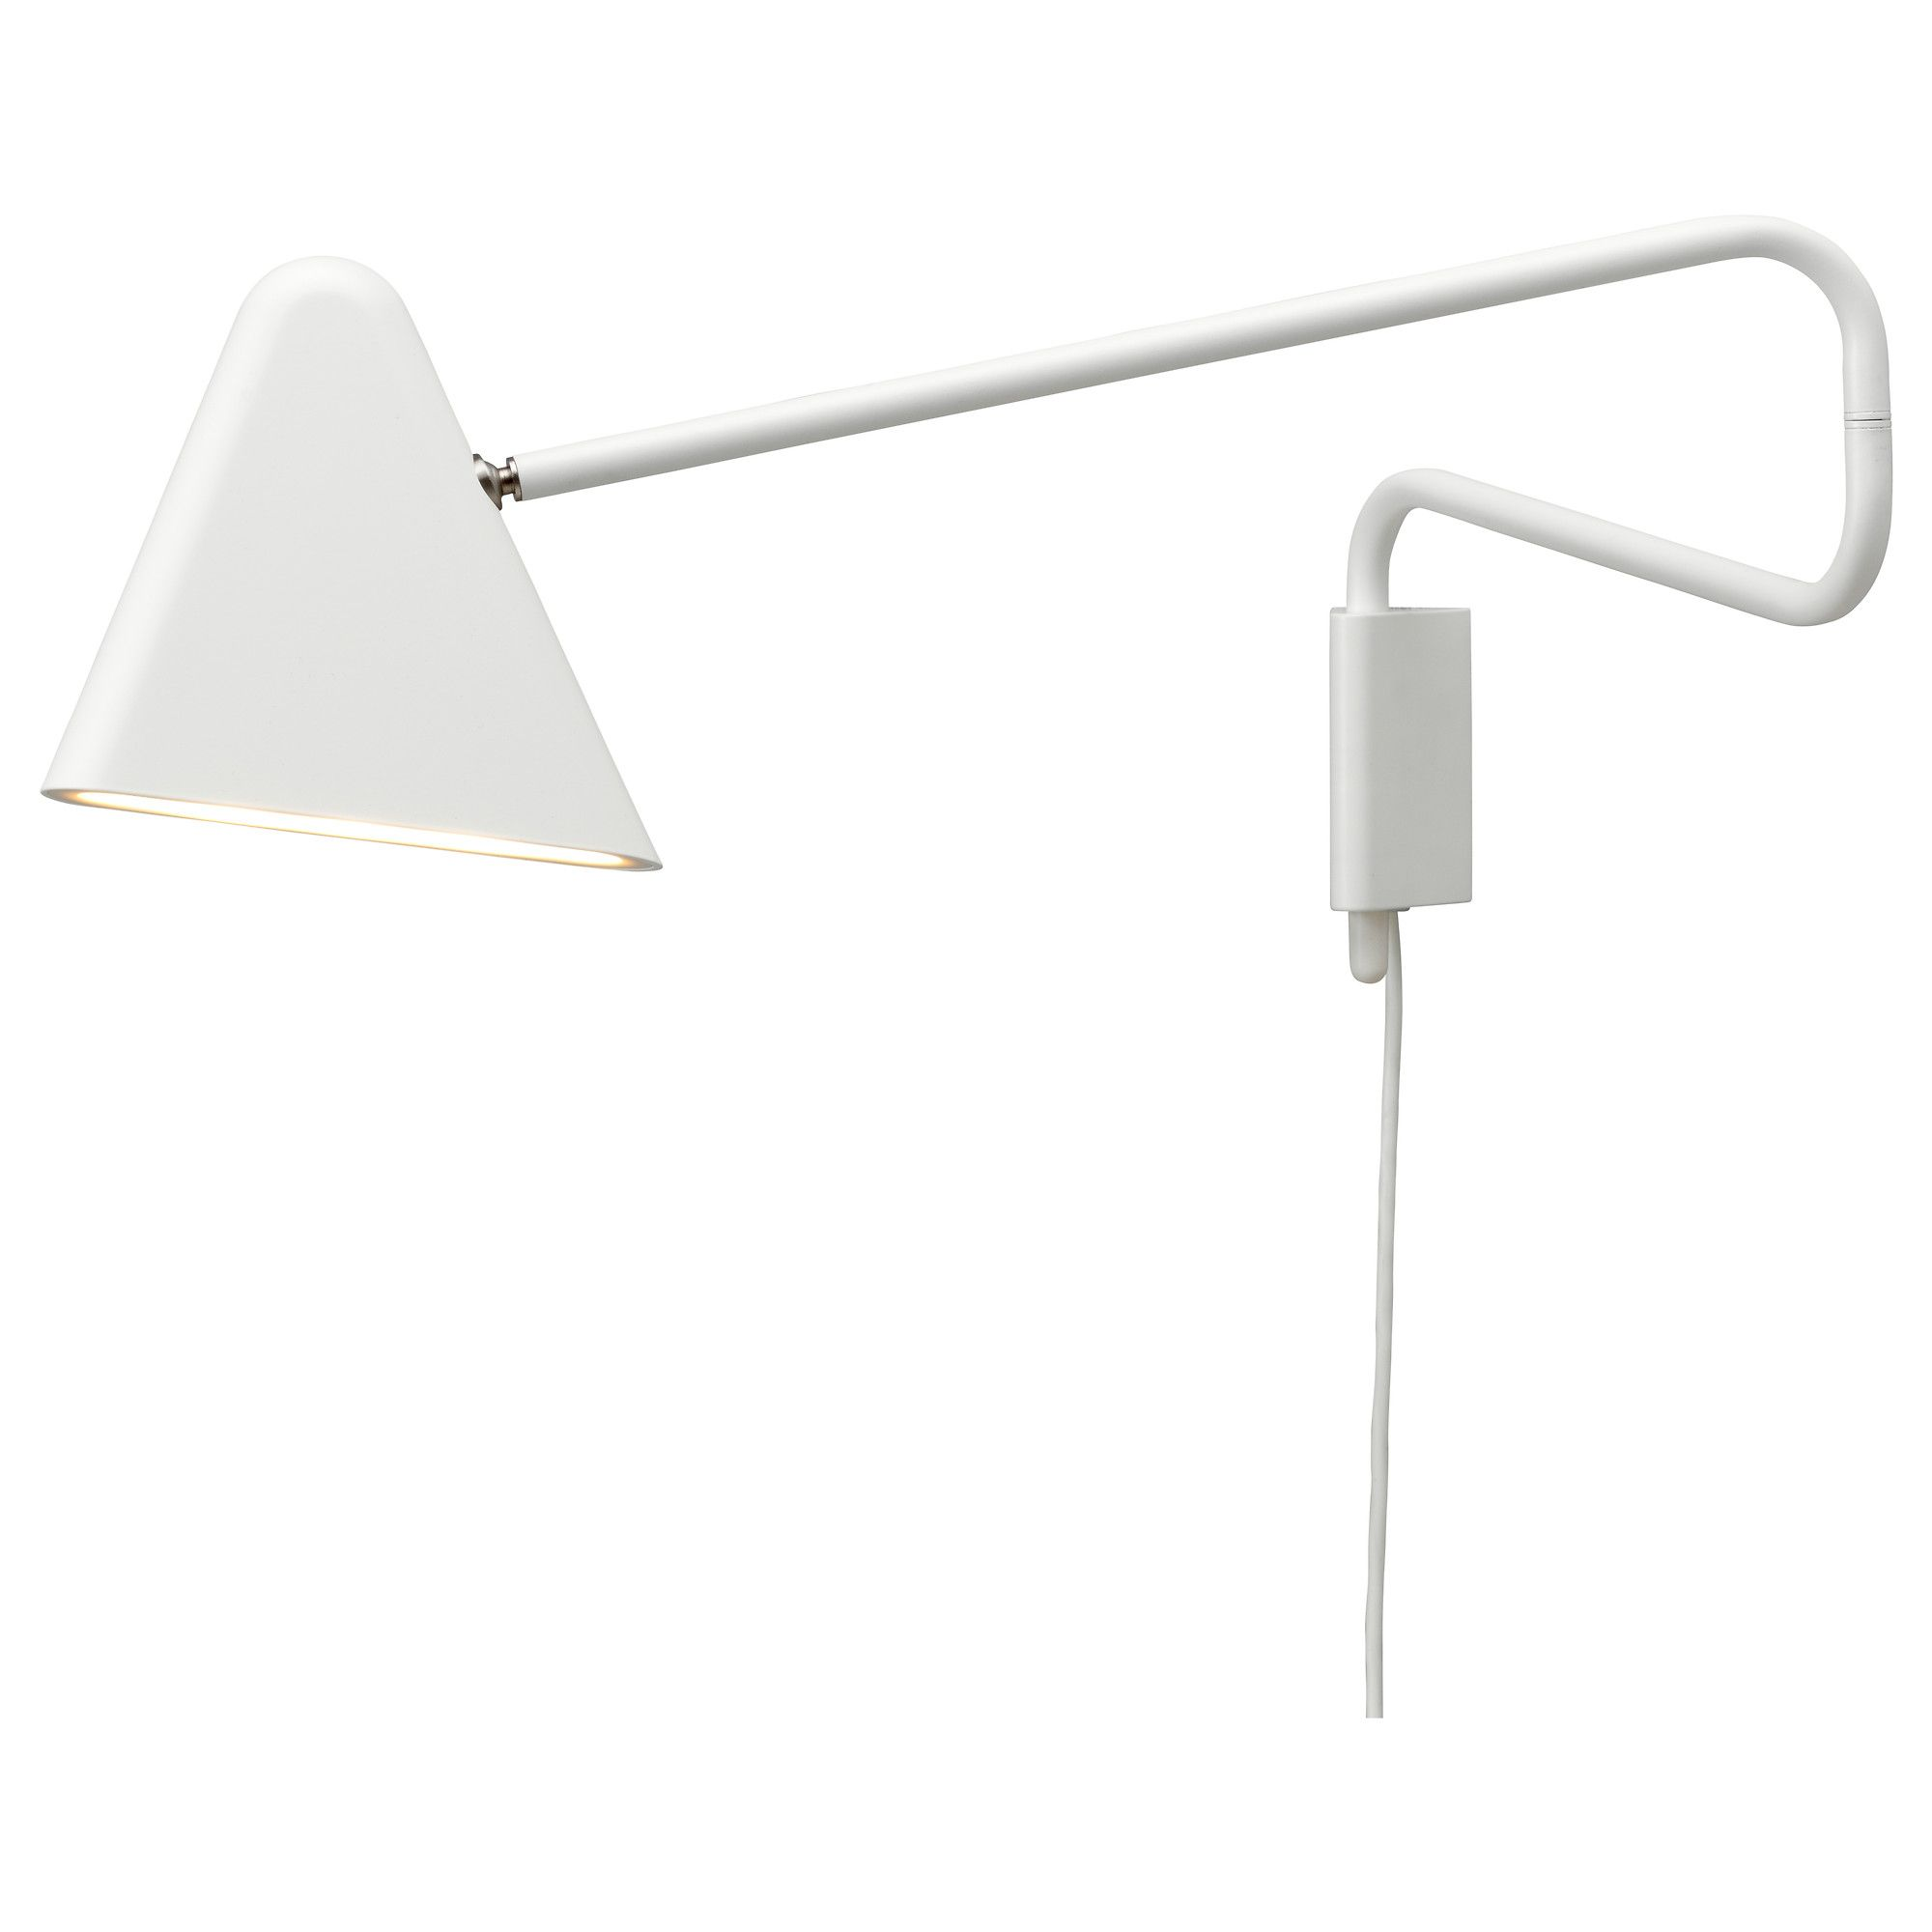 Ikea Ps Lamp Ikea Ps 2012 Led Wall Lamp White Ikea Chicago